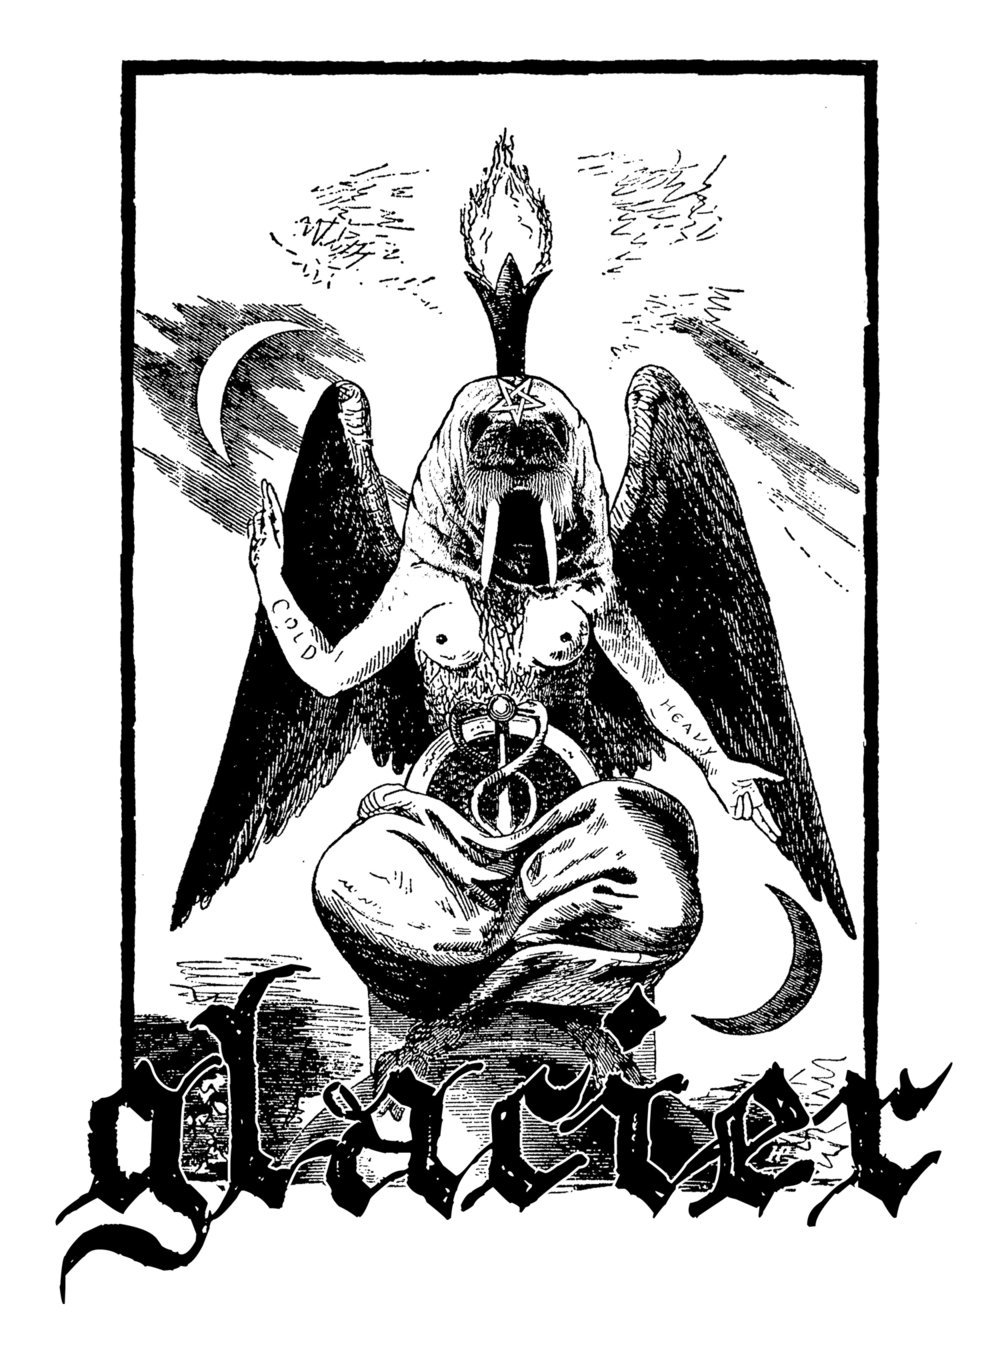 Shirt design for my band, Glacier.